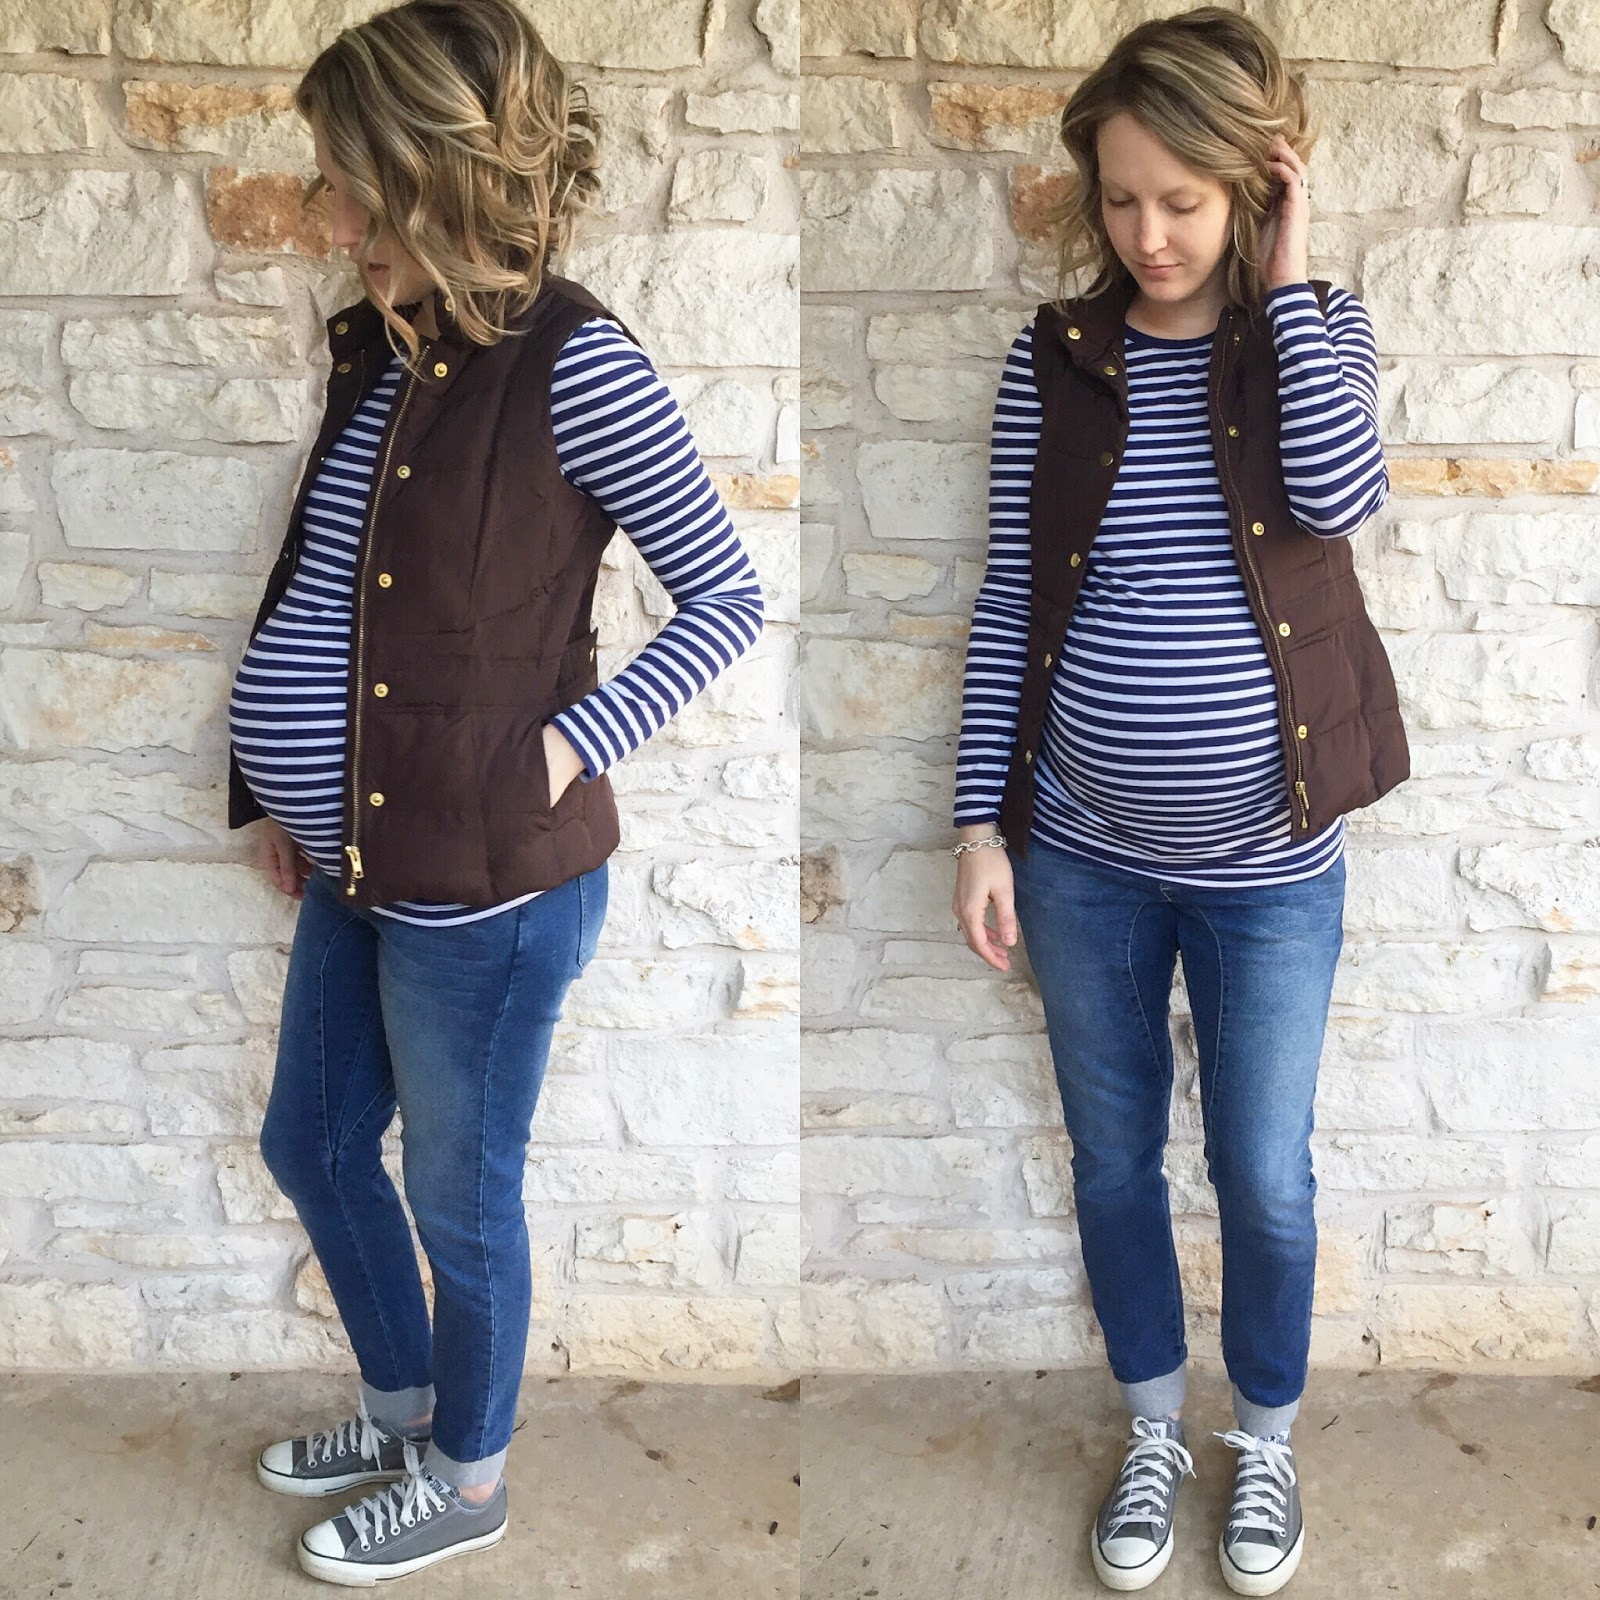 Top 5 favorite maternity outfits jesse coulter top gap vest belk jeans cotton on non maternity shoes converse ombrellifo Image collections